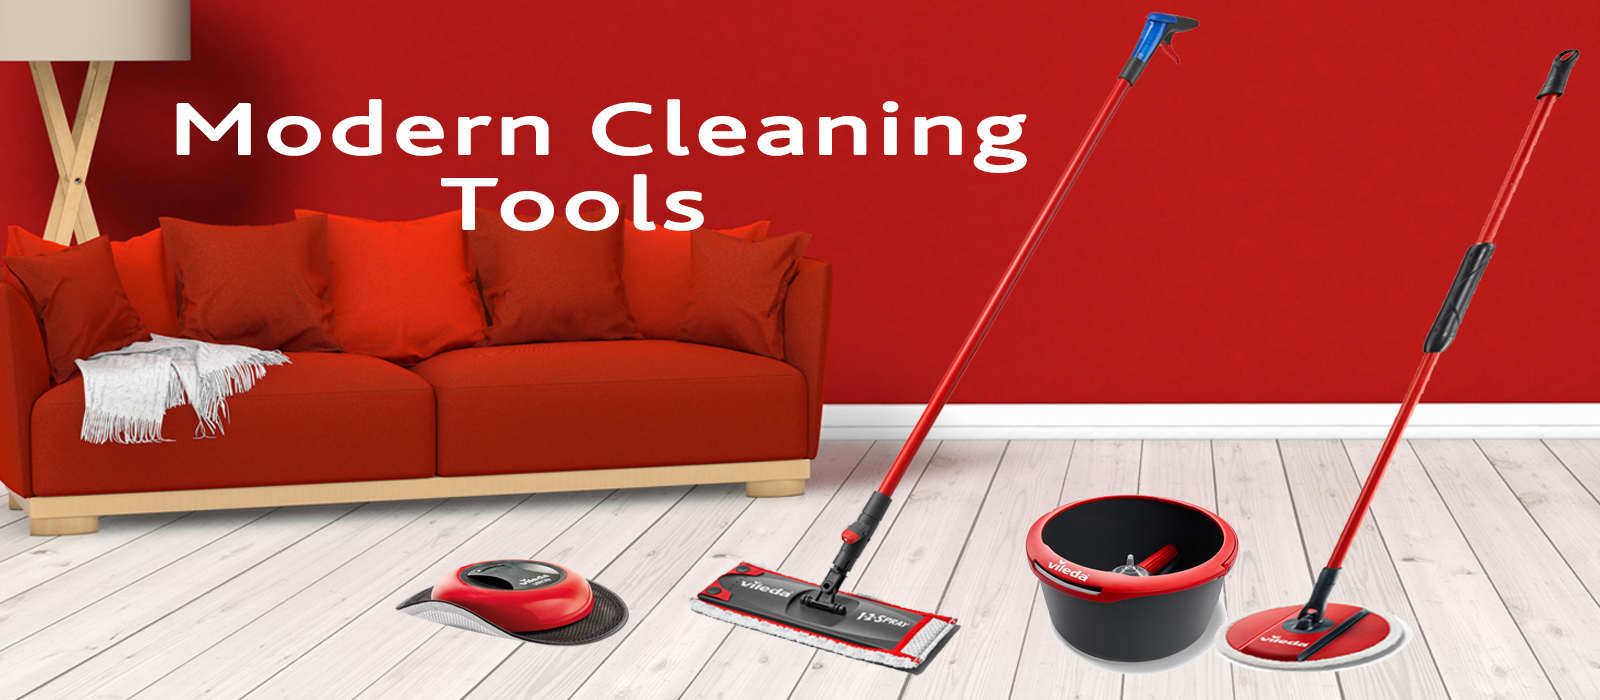 find-your-modern-cleaning-tools-here.jpg